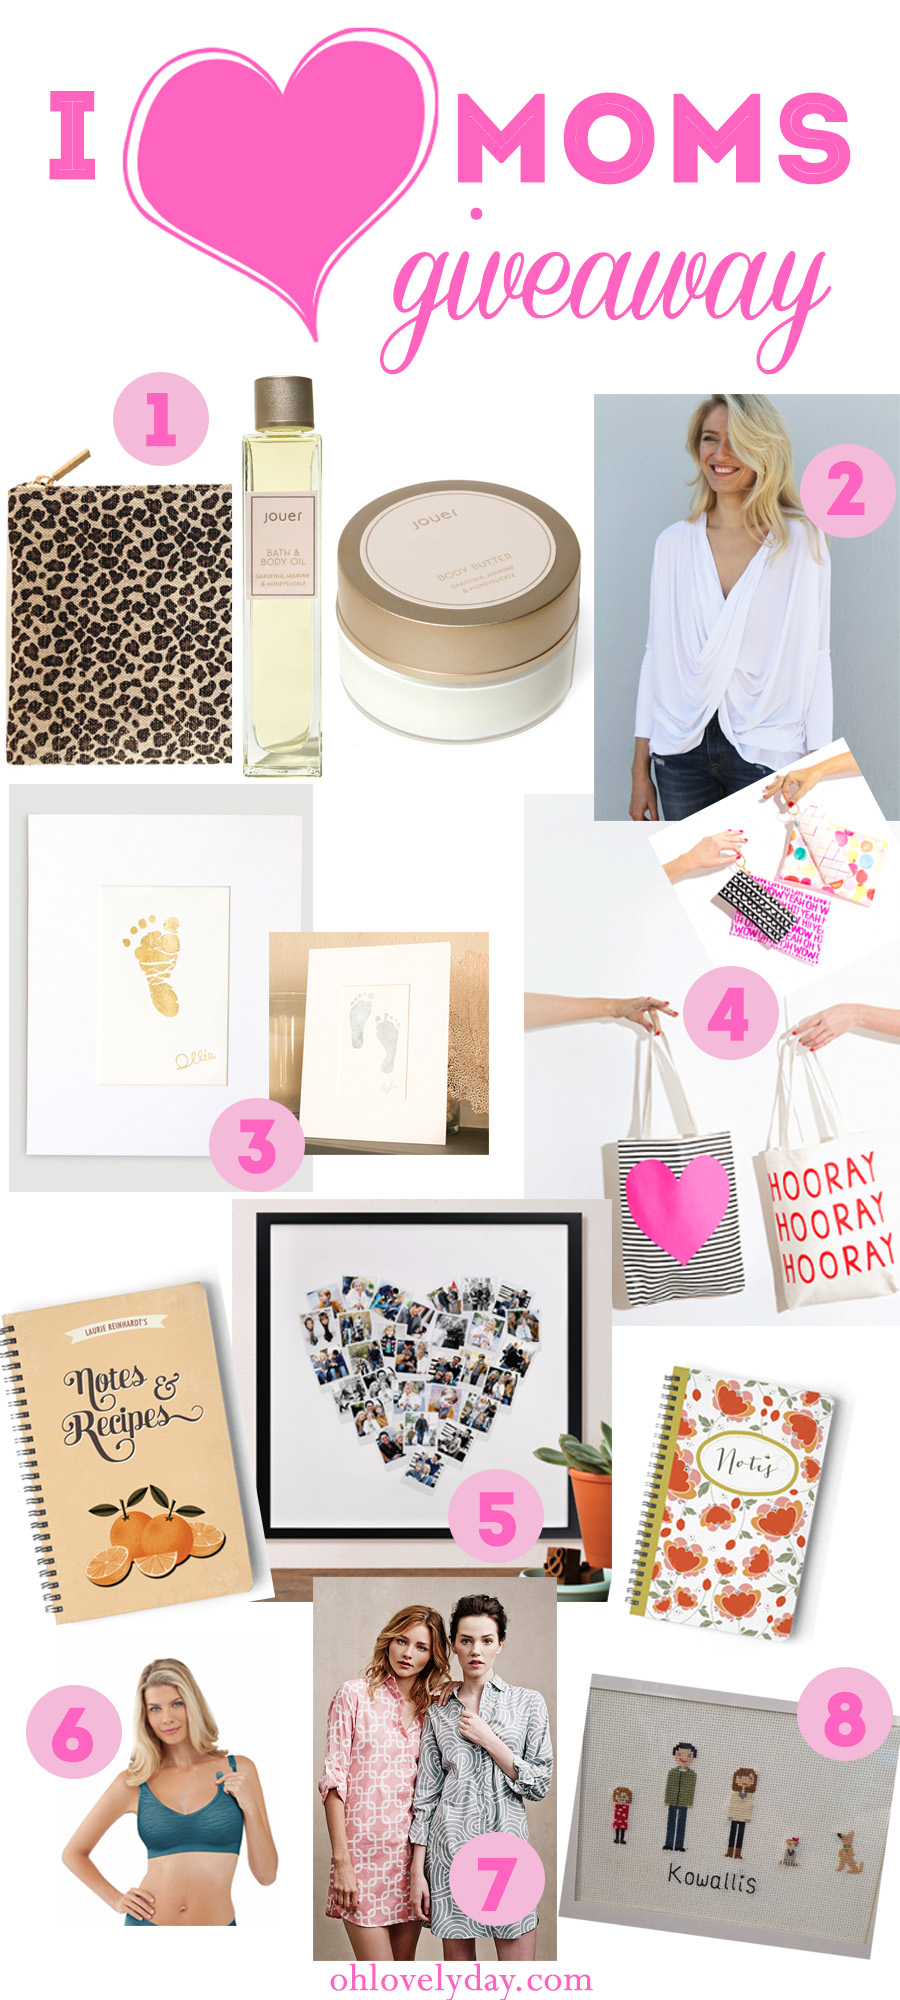 Mother's Day goodies giveaway | Oh Lovely Day